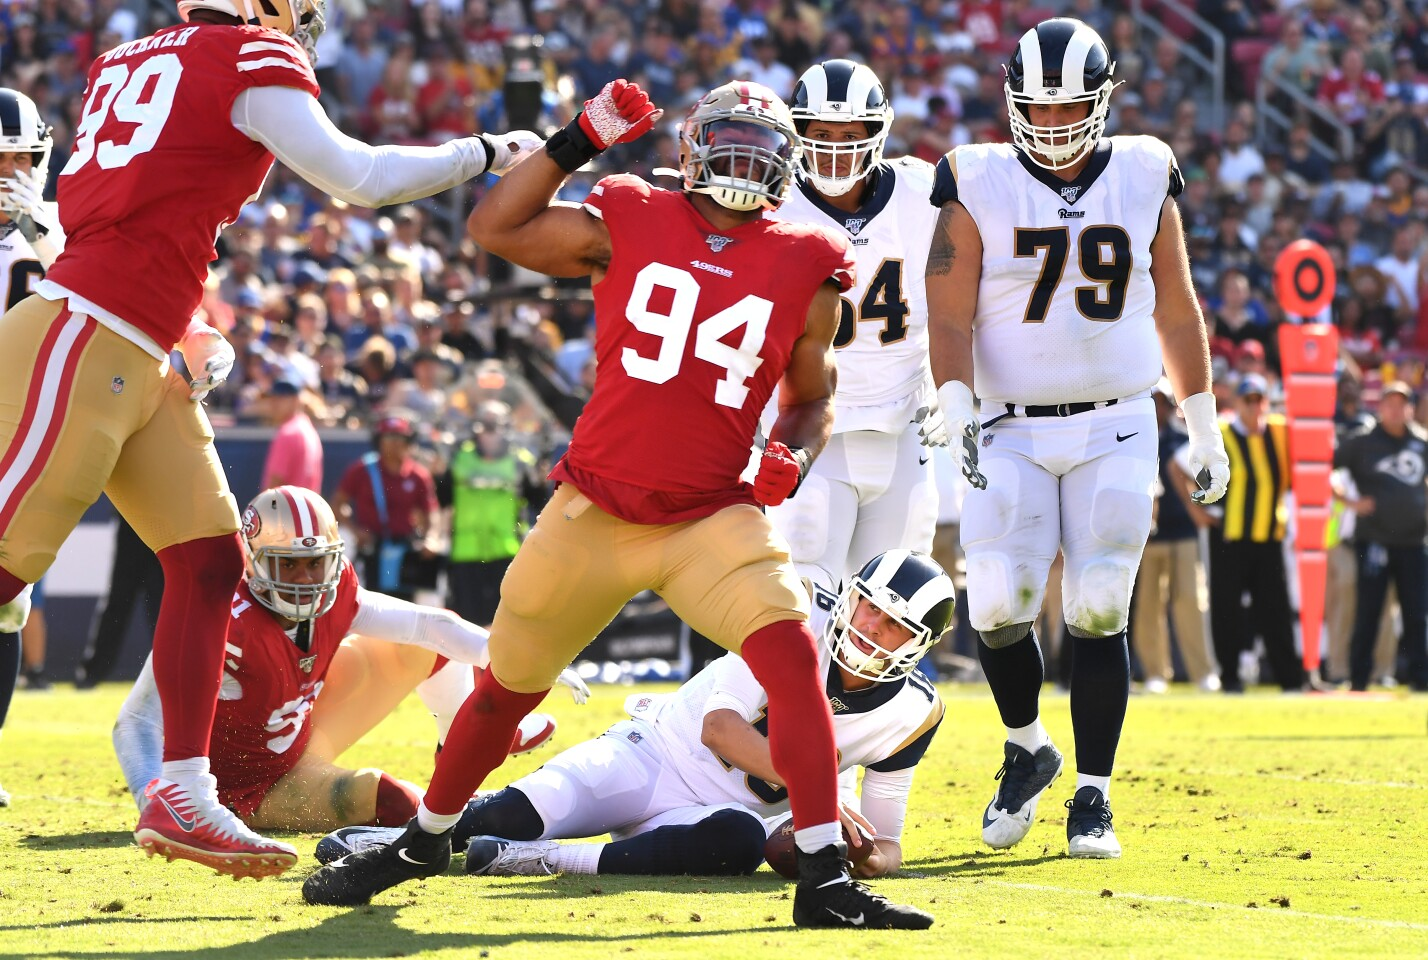 LOS ANGELES, CALIFORNIA OCTOBER 13, 2019-49ers defensive lineman Solomon Thomas (94) celebrates his sack of Rams Jared Goff in the 3rd quarter at the Coliseum Sunday. (Wally Skalij/Los Angeles Times)